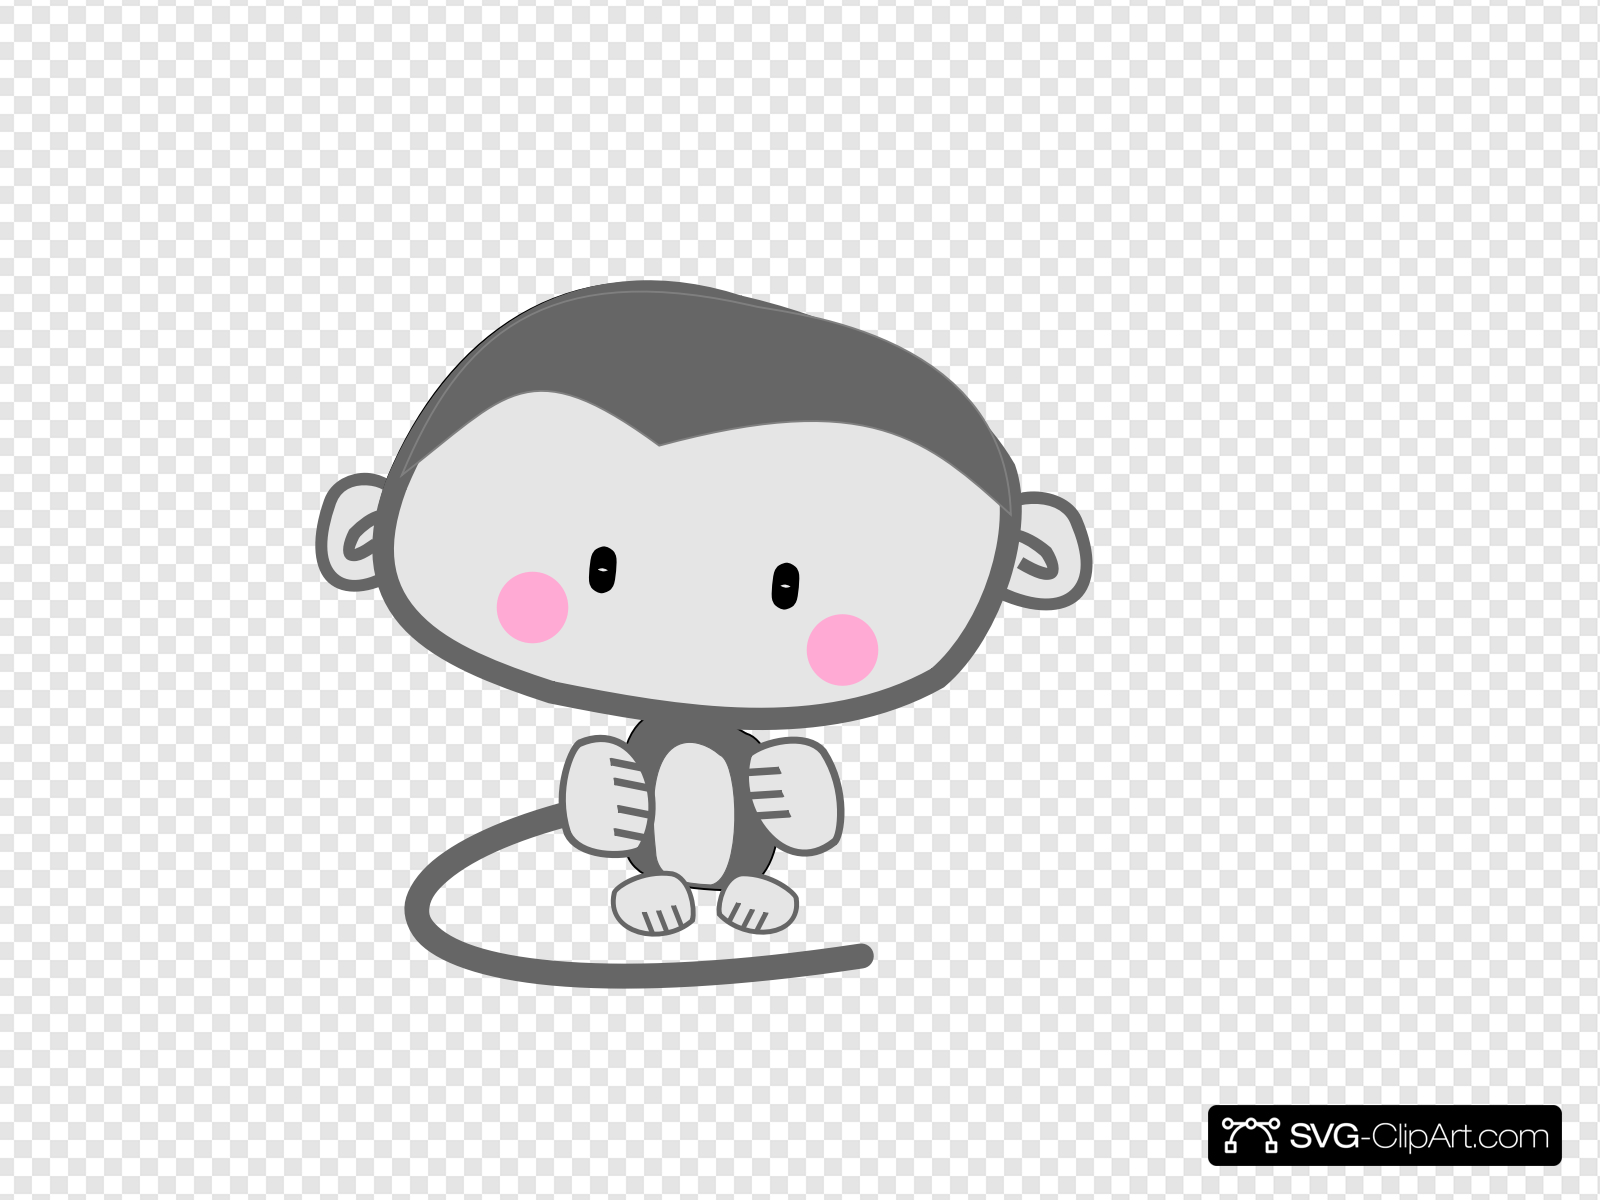 Pink cheeks clipart image royalty free stock Monkey Pink Cheeks Clip art, Icon and SVG - SVG Clipart image royalty free stock